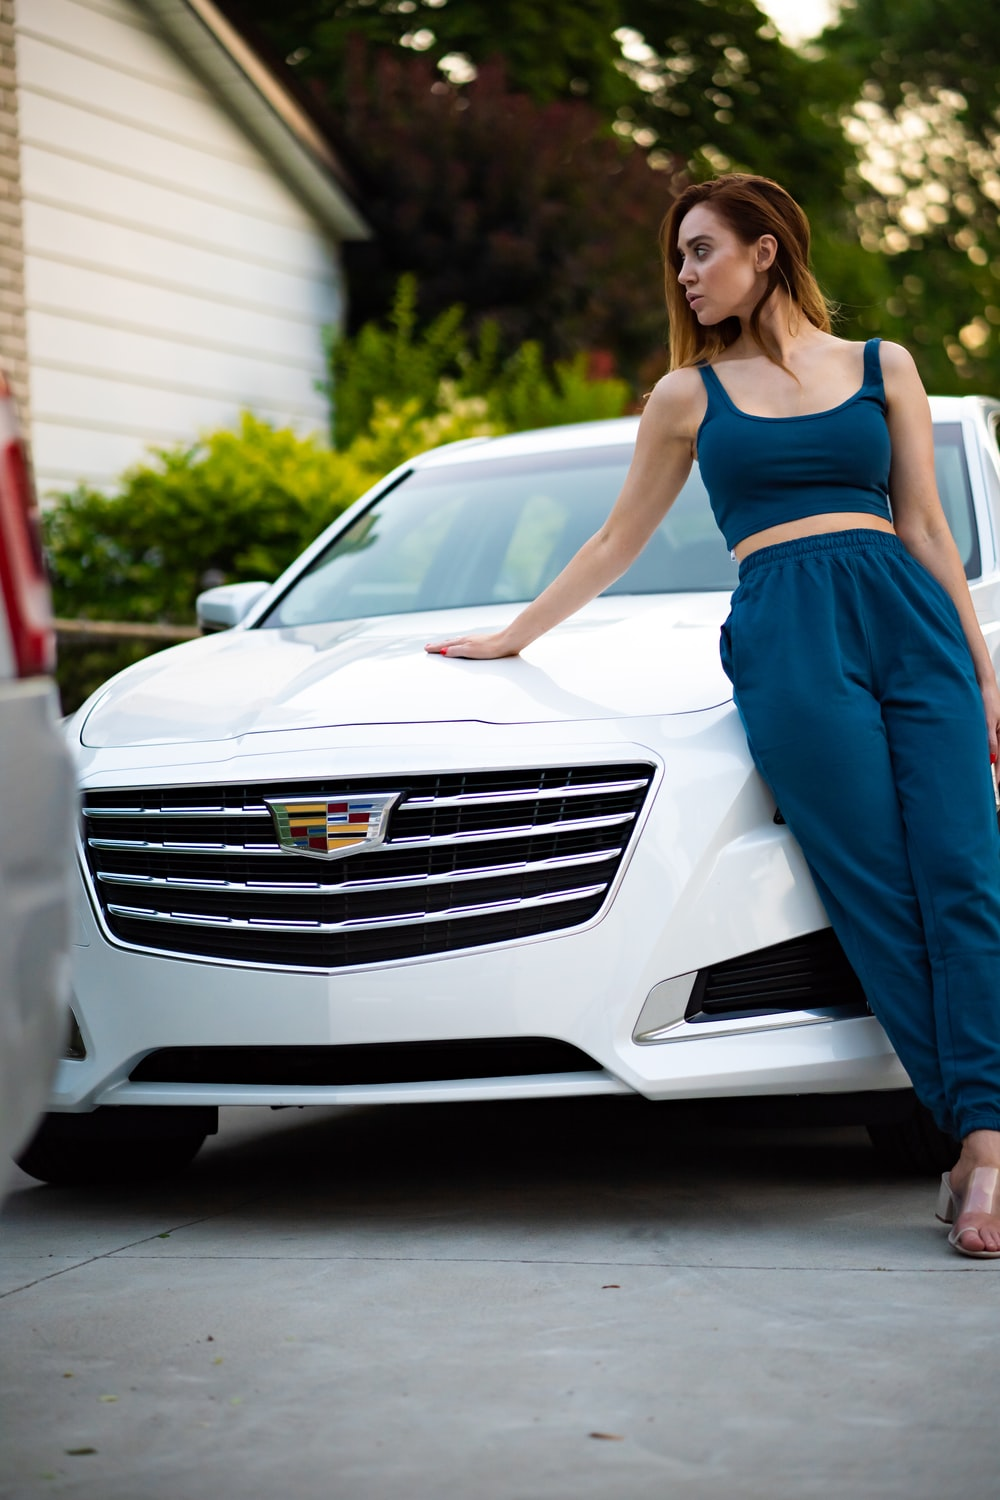 woman leaning on white Cadillac vehicle